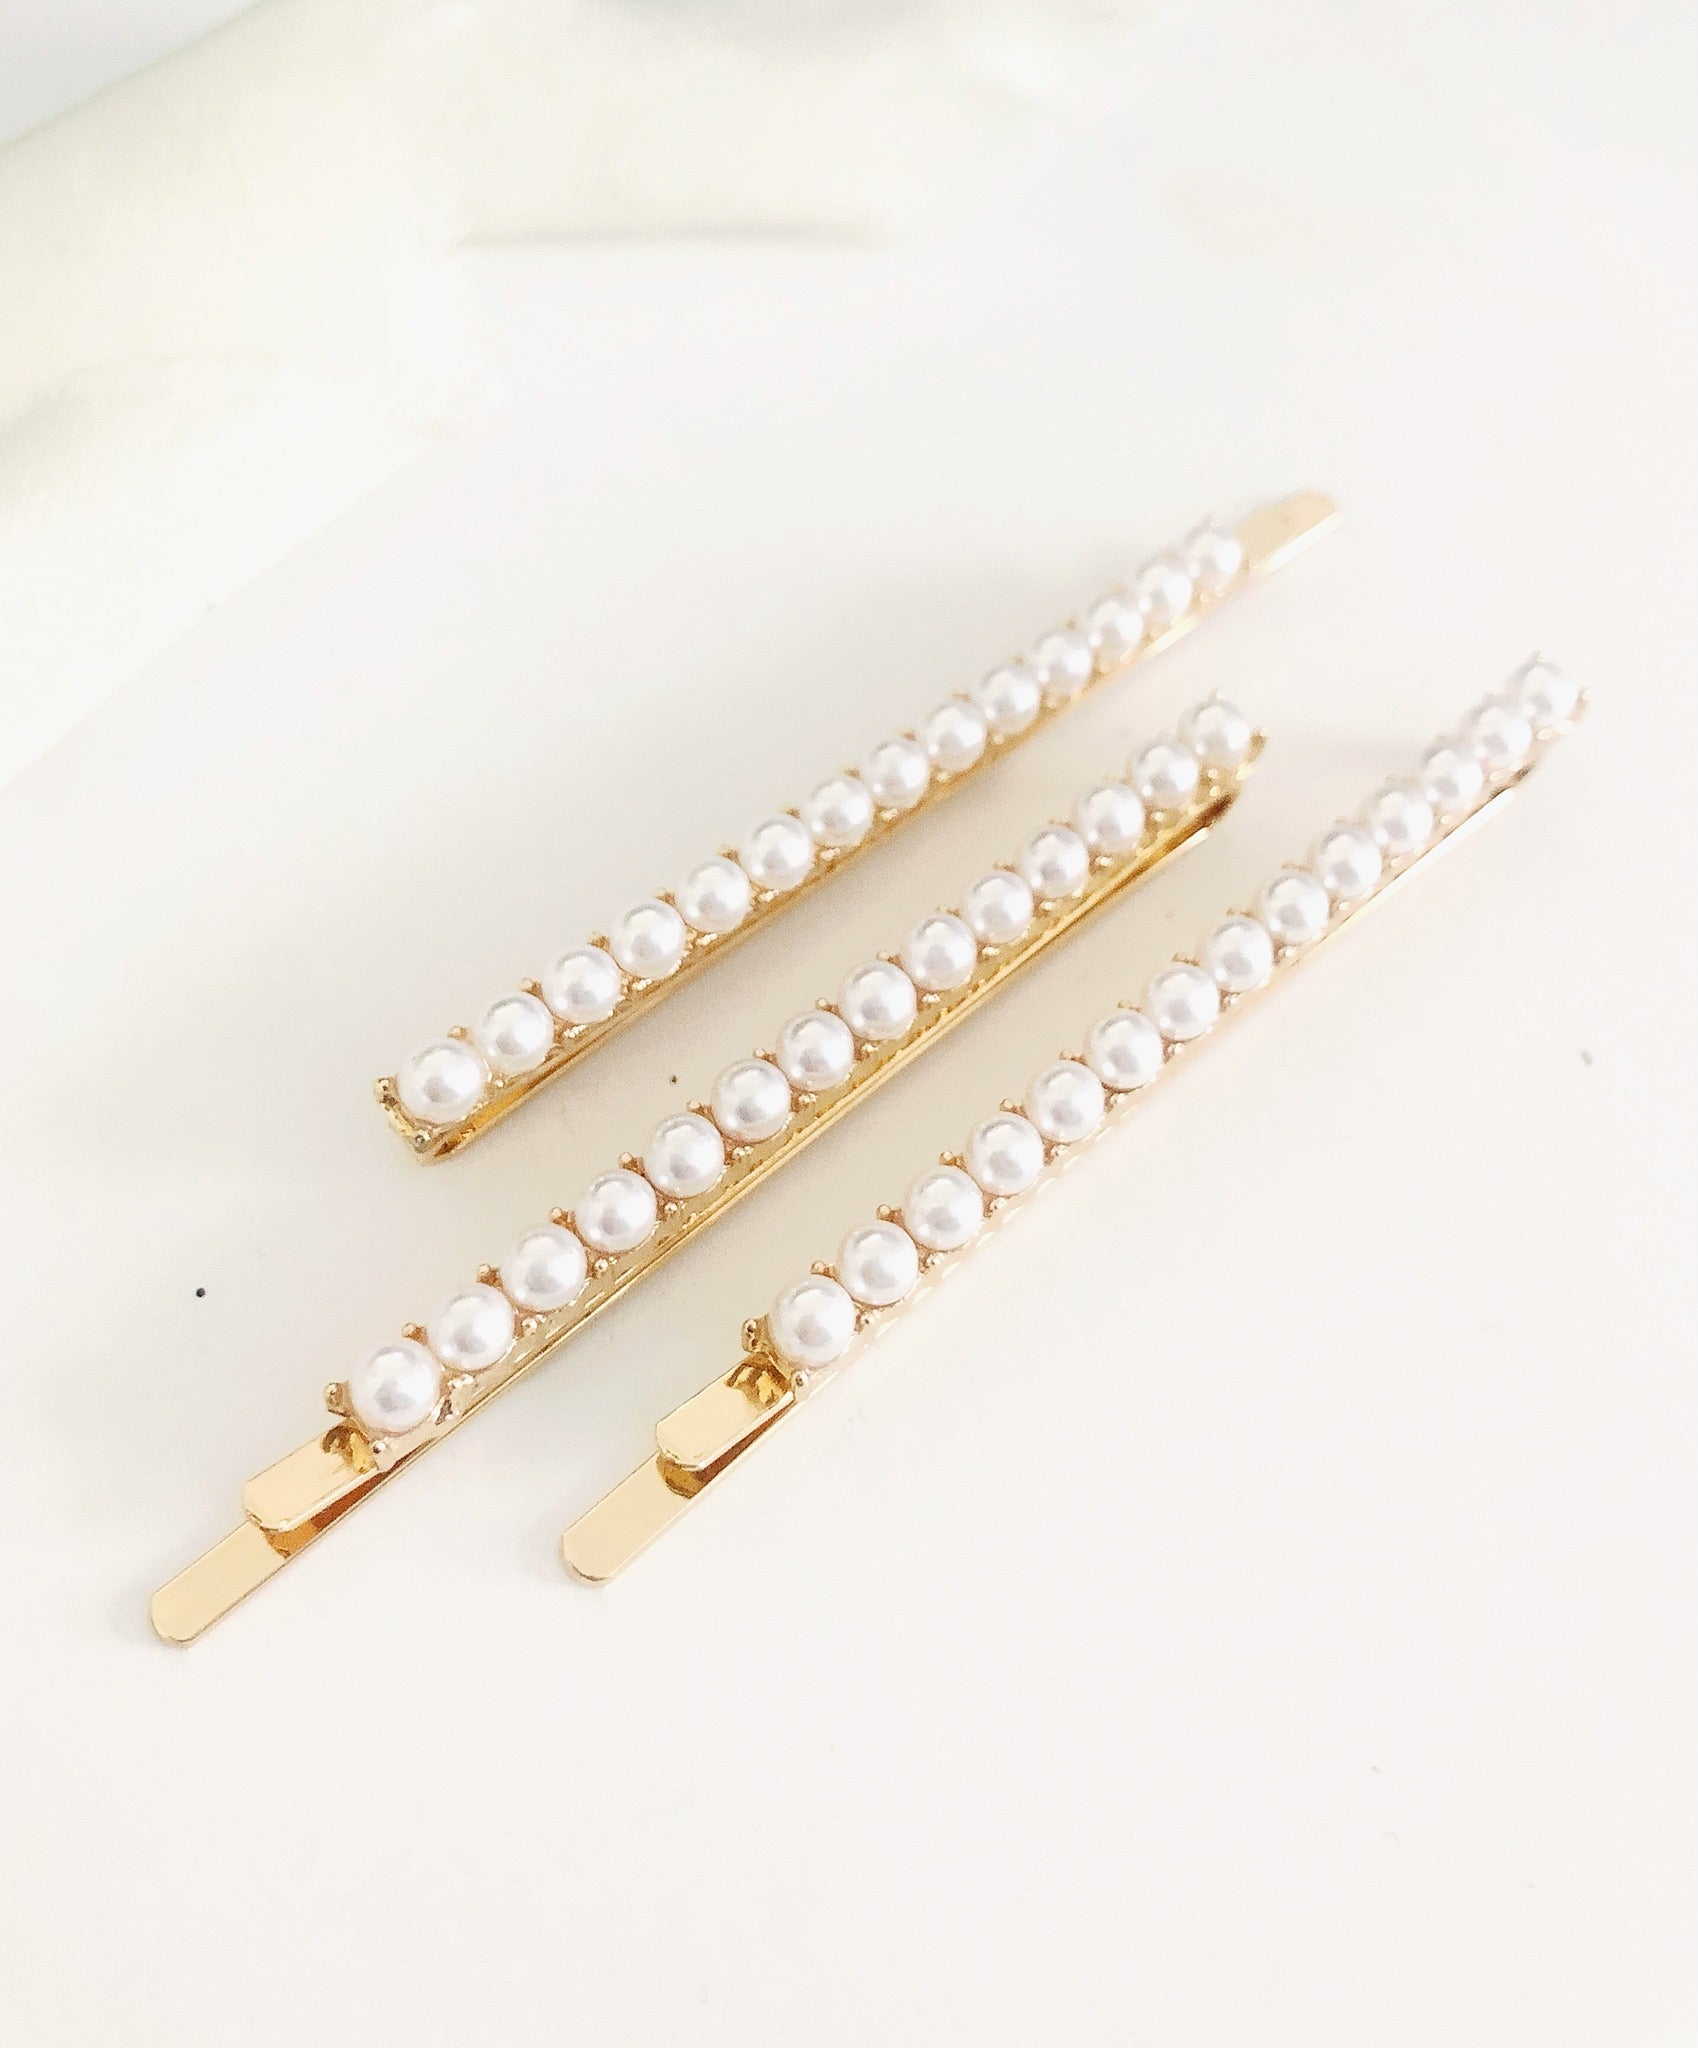 3 Piece Pearl Hair Bobby Pin Set